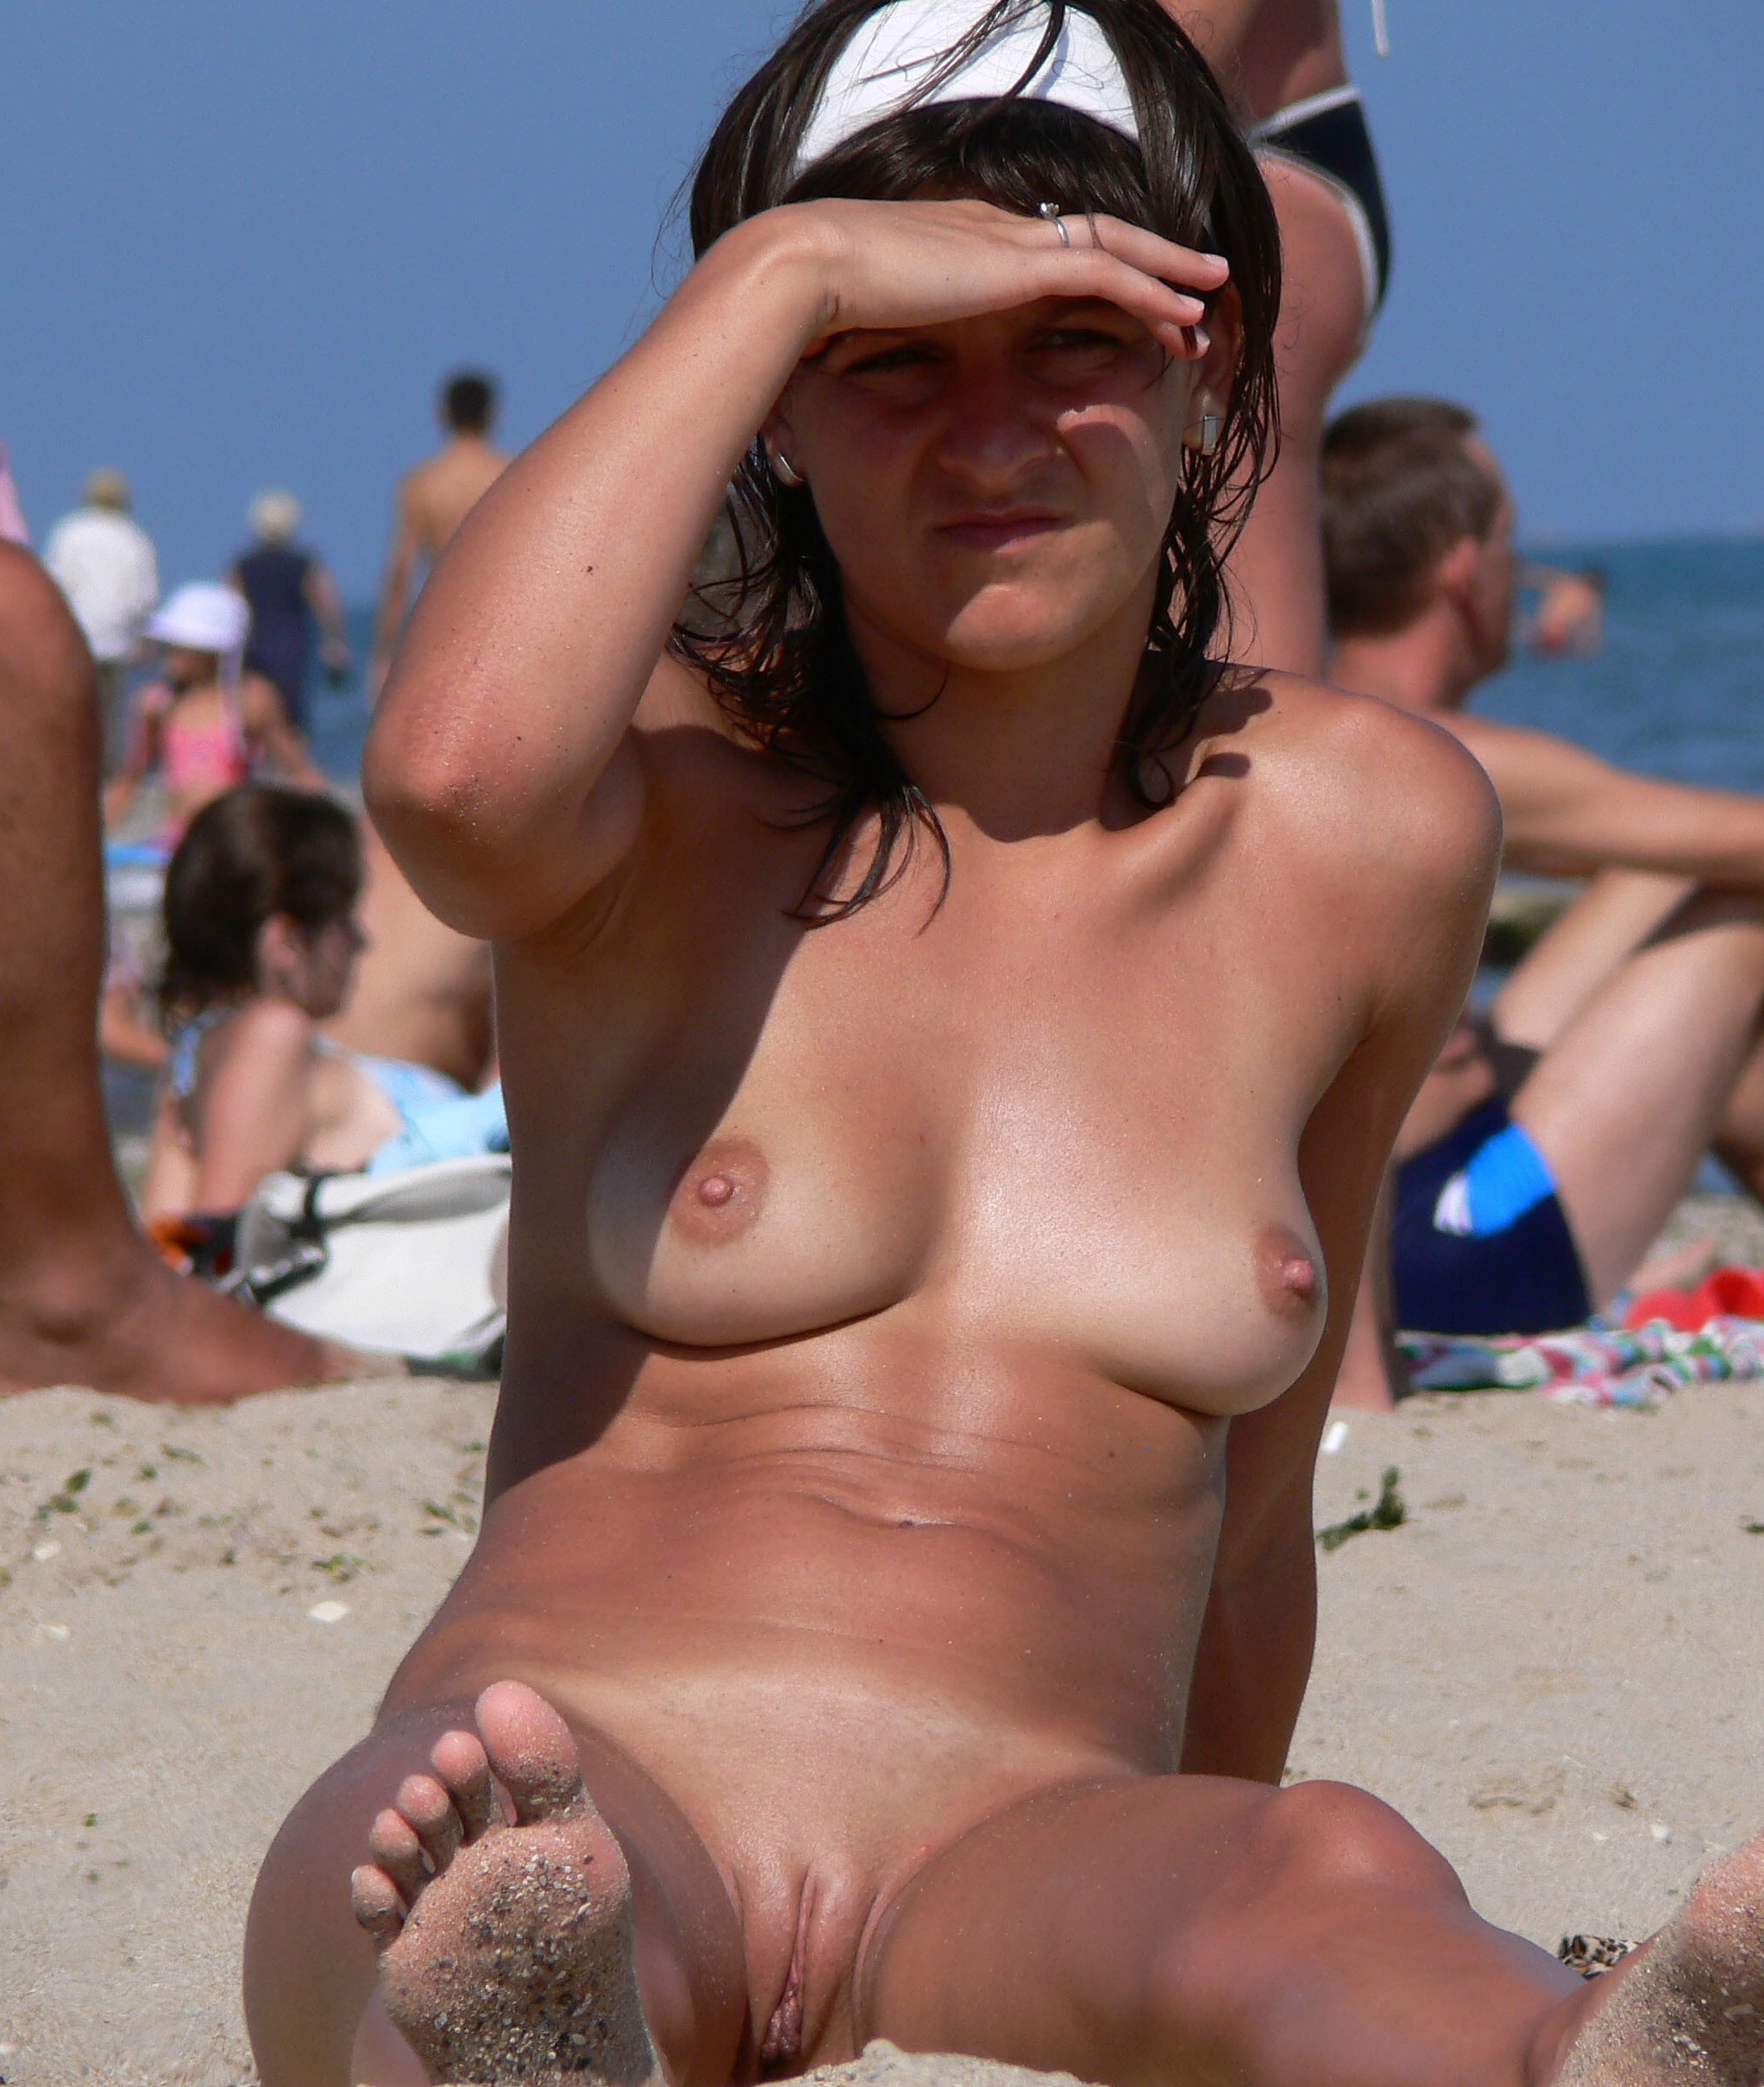 nude female beach families hot